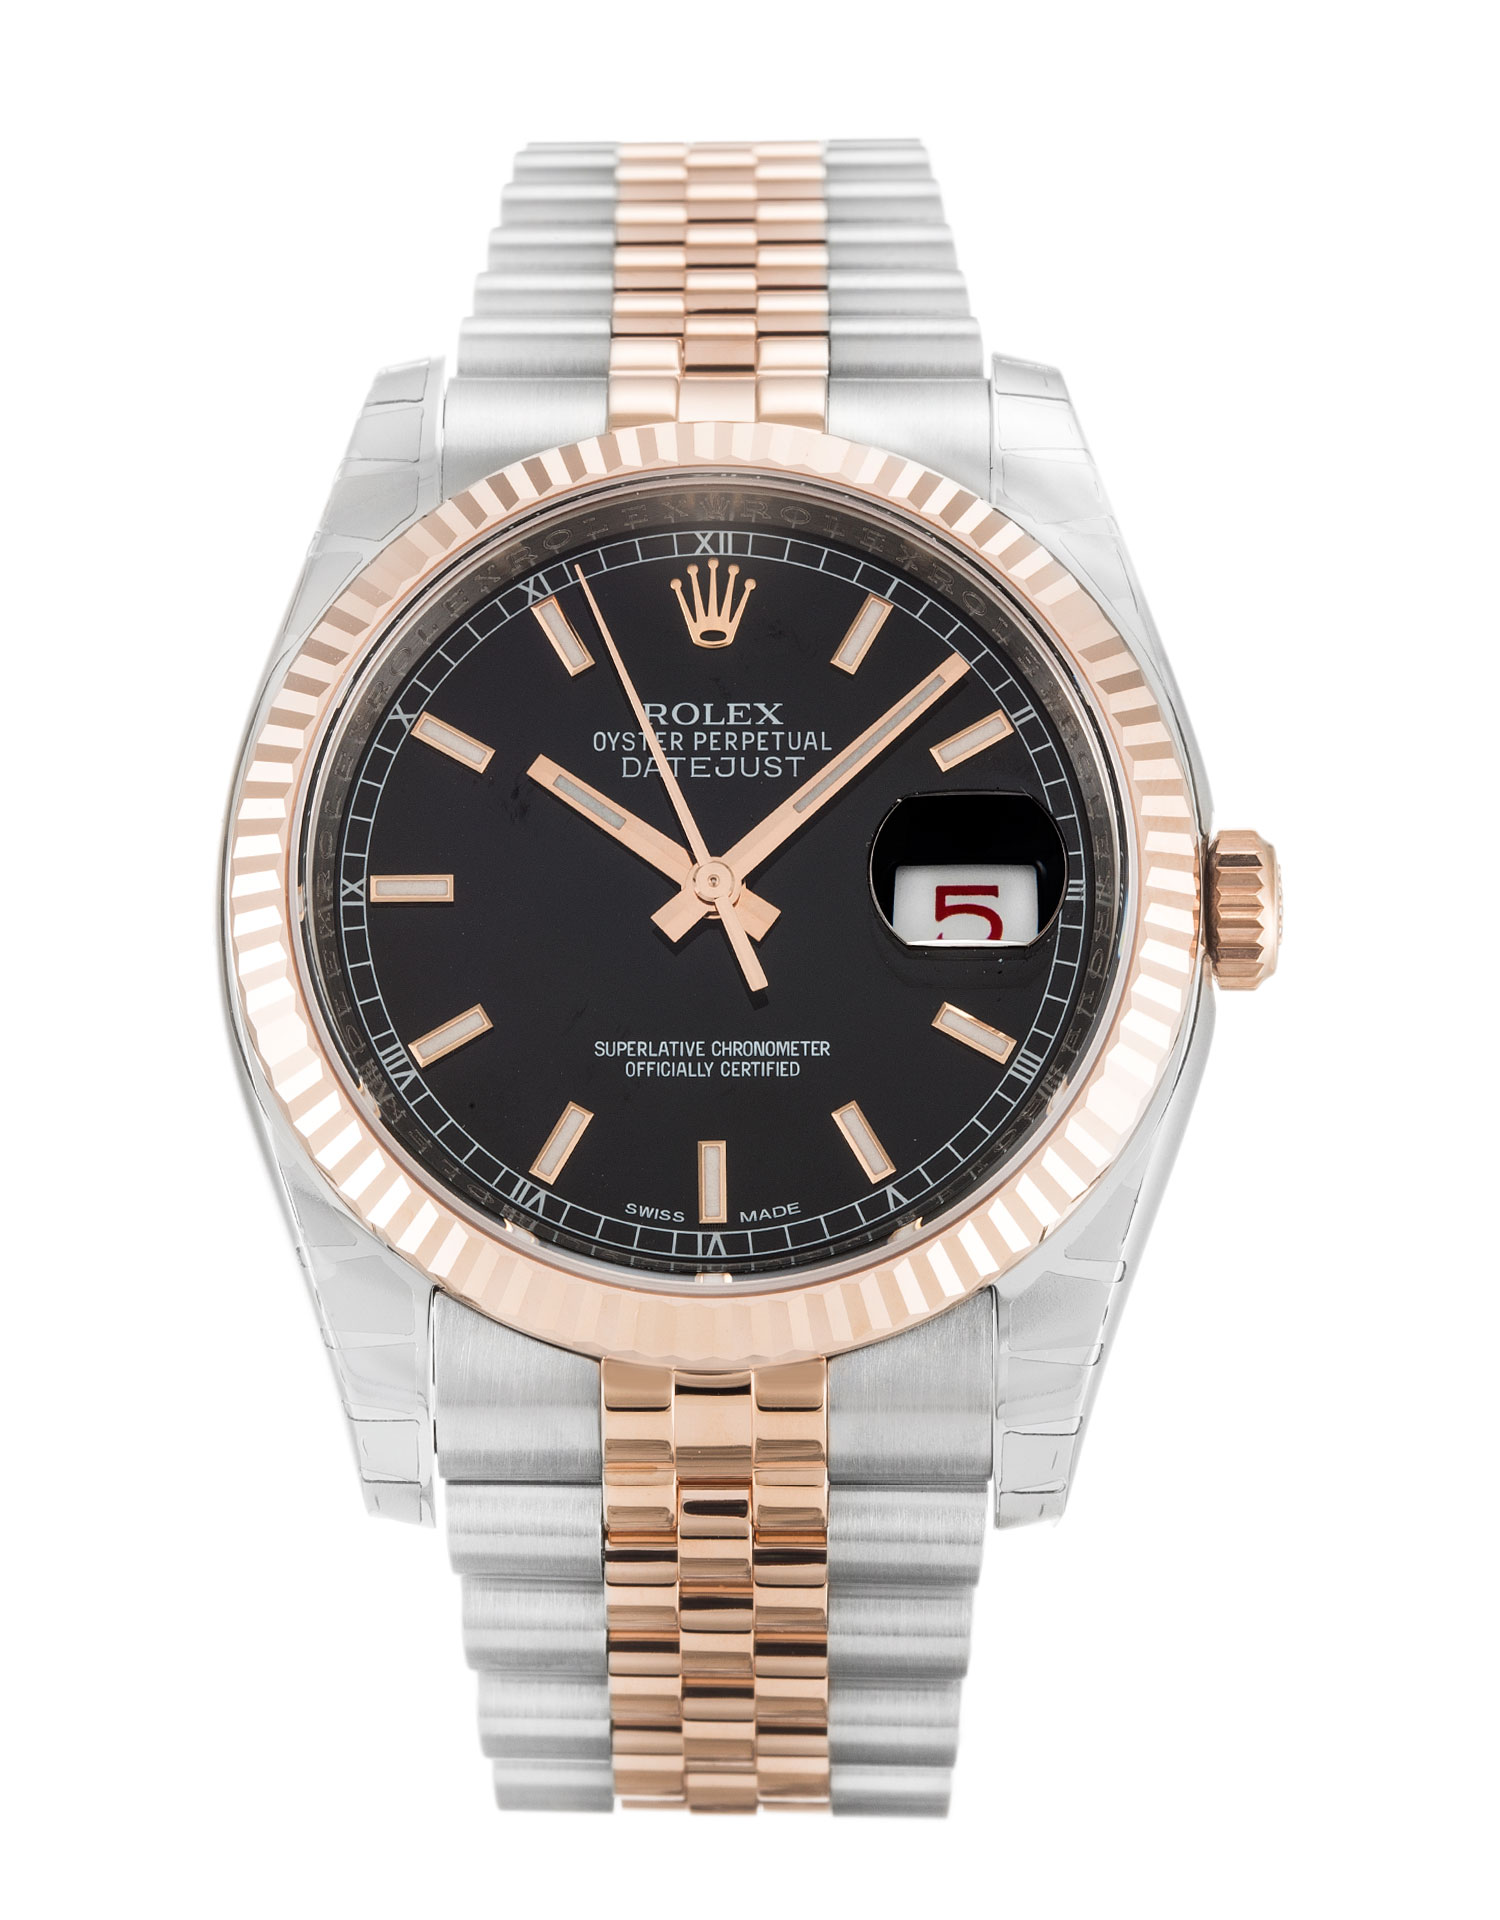 Rolex Datejust 116231 Mens 36 Mm Steel & Rose Gold Case Automatic Movement – iapac.to